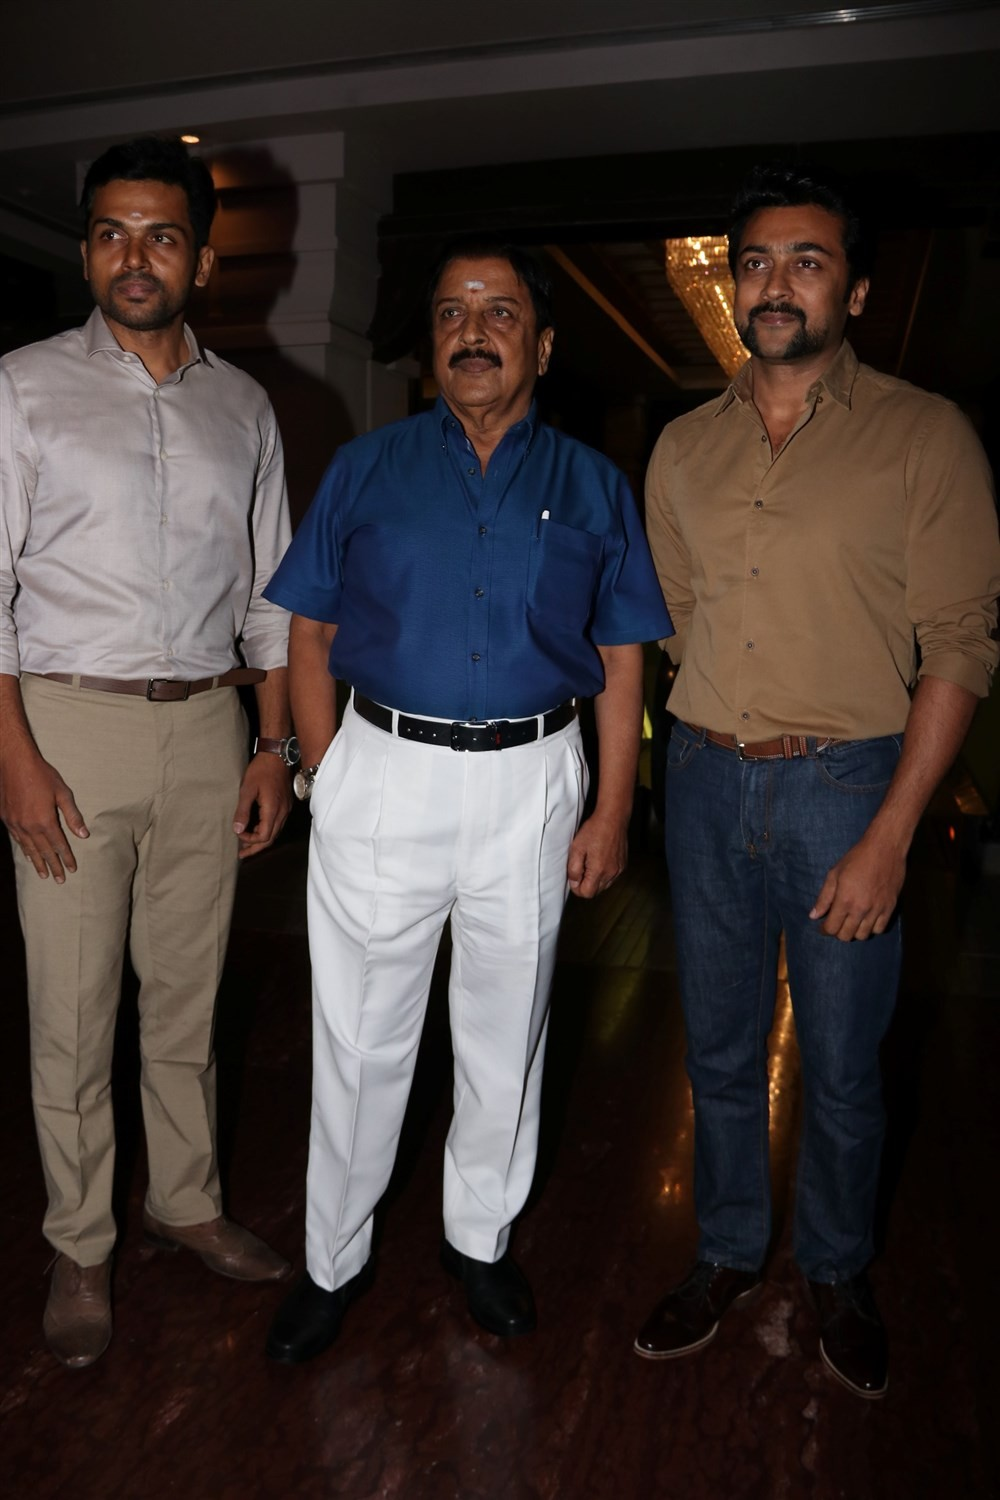 Suriya,Karthi,Sivakumar 75 Years Celebration,Bayilvan Ranganathan,Rajasekar Pandian,G Dhananjayan,Mohan Raman,Jagan,Sivakumar 75 Years Celebration pics,Sivakumar 75 Years Celebration images,Sivakumar 75 Years Celebration photos,Sivakumar 75 Years Celebrat